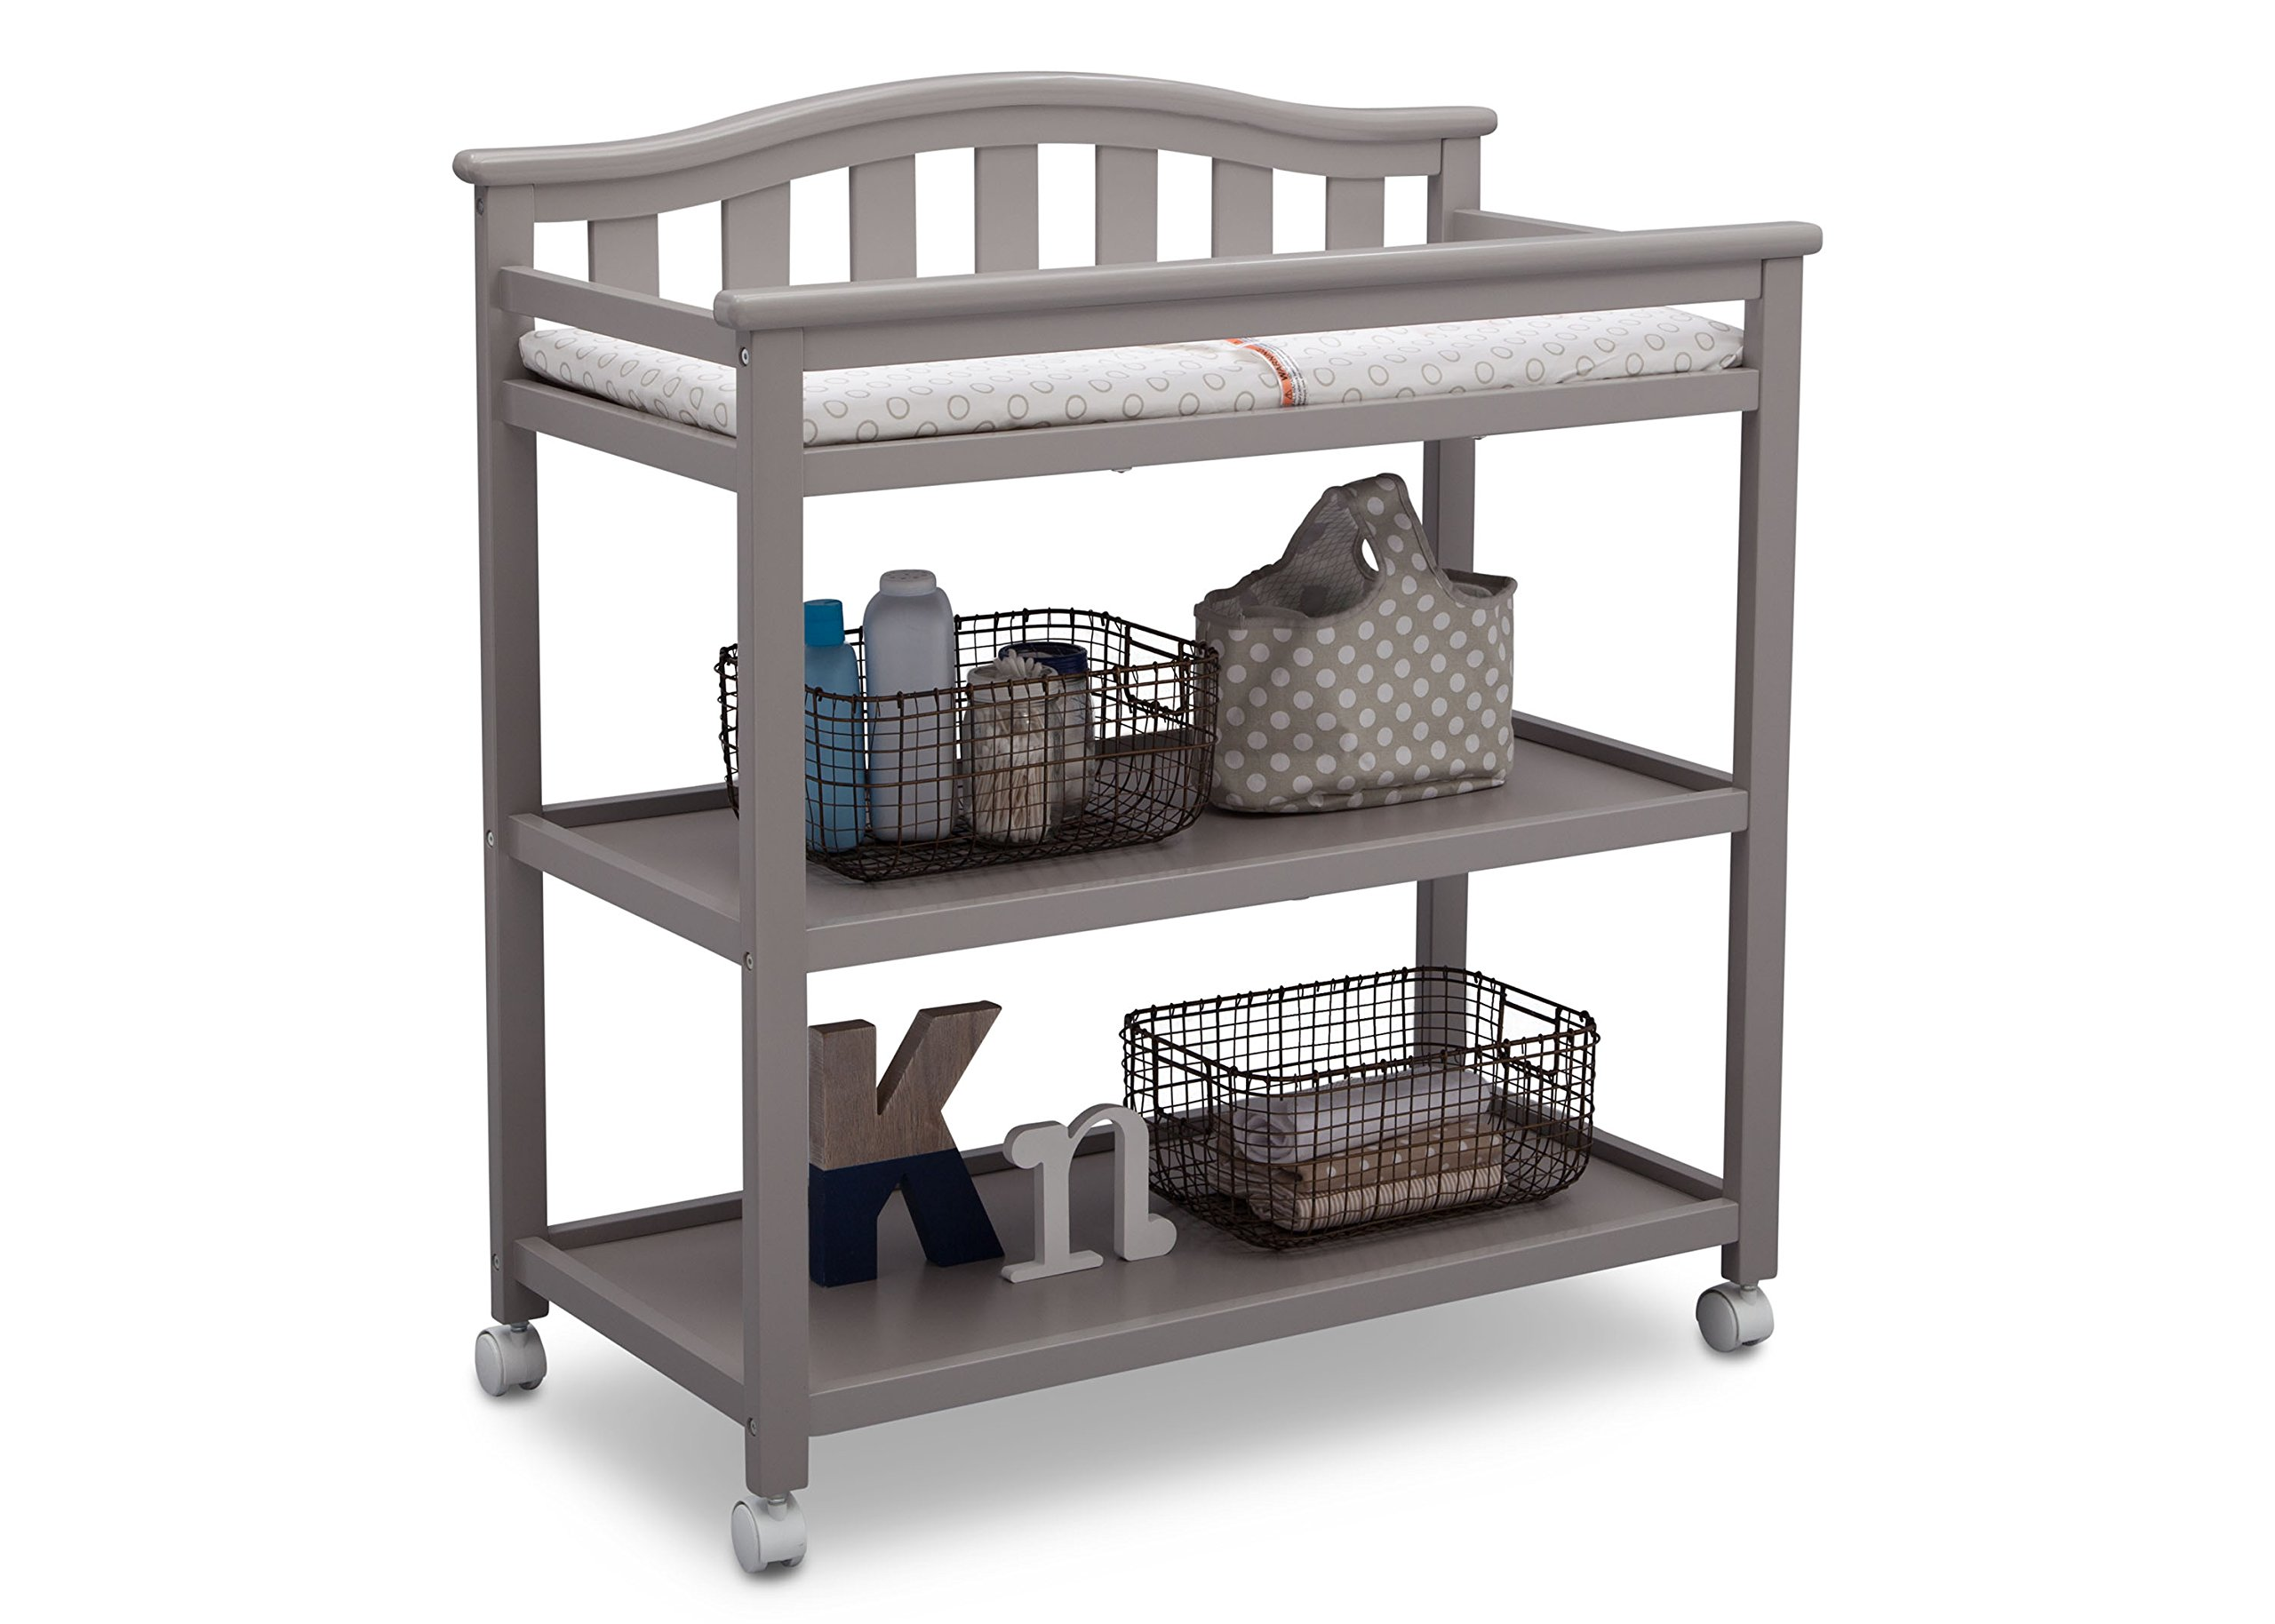 Delta Children Bell Top Changing Table with Casters, Grey by Delta Children (Image #4)